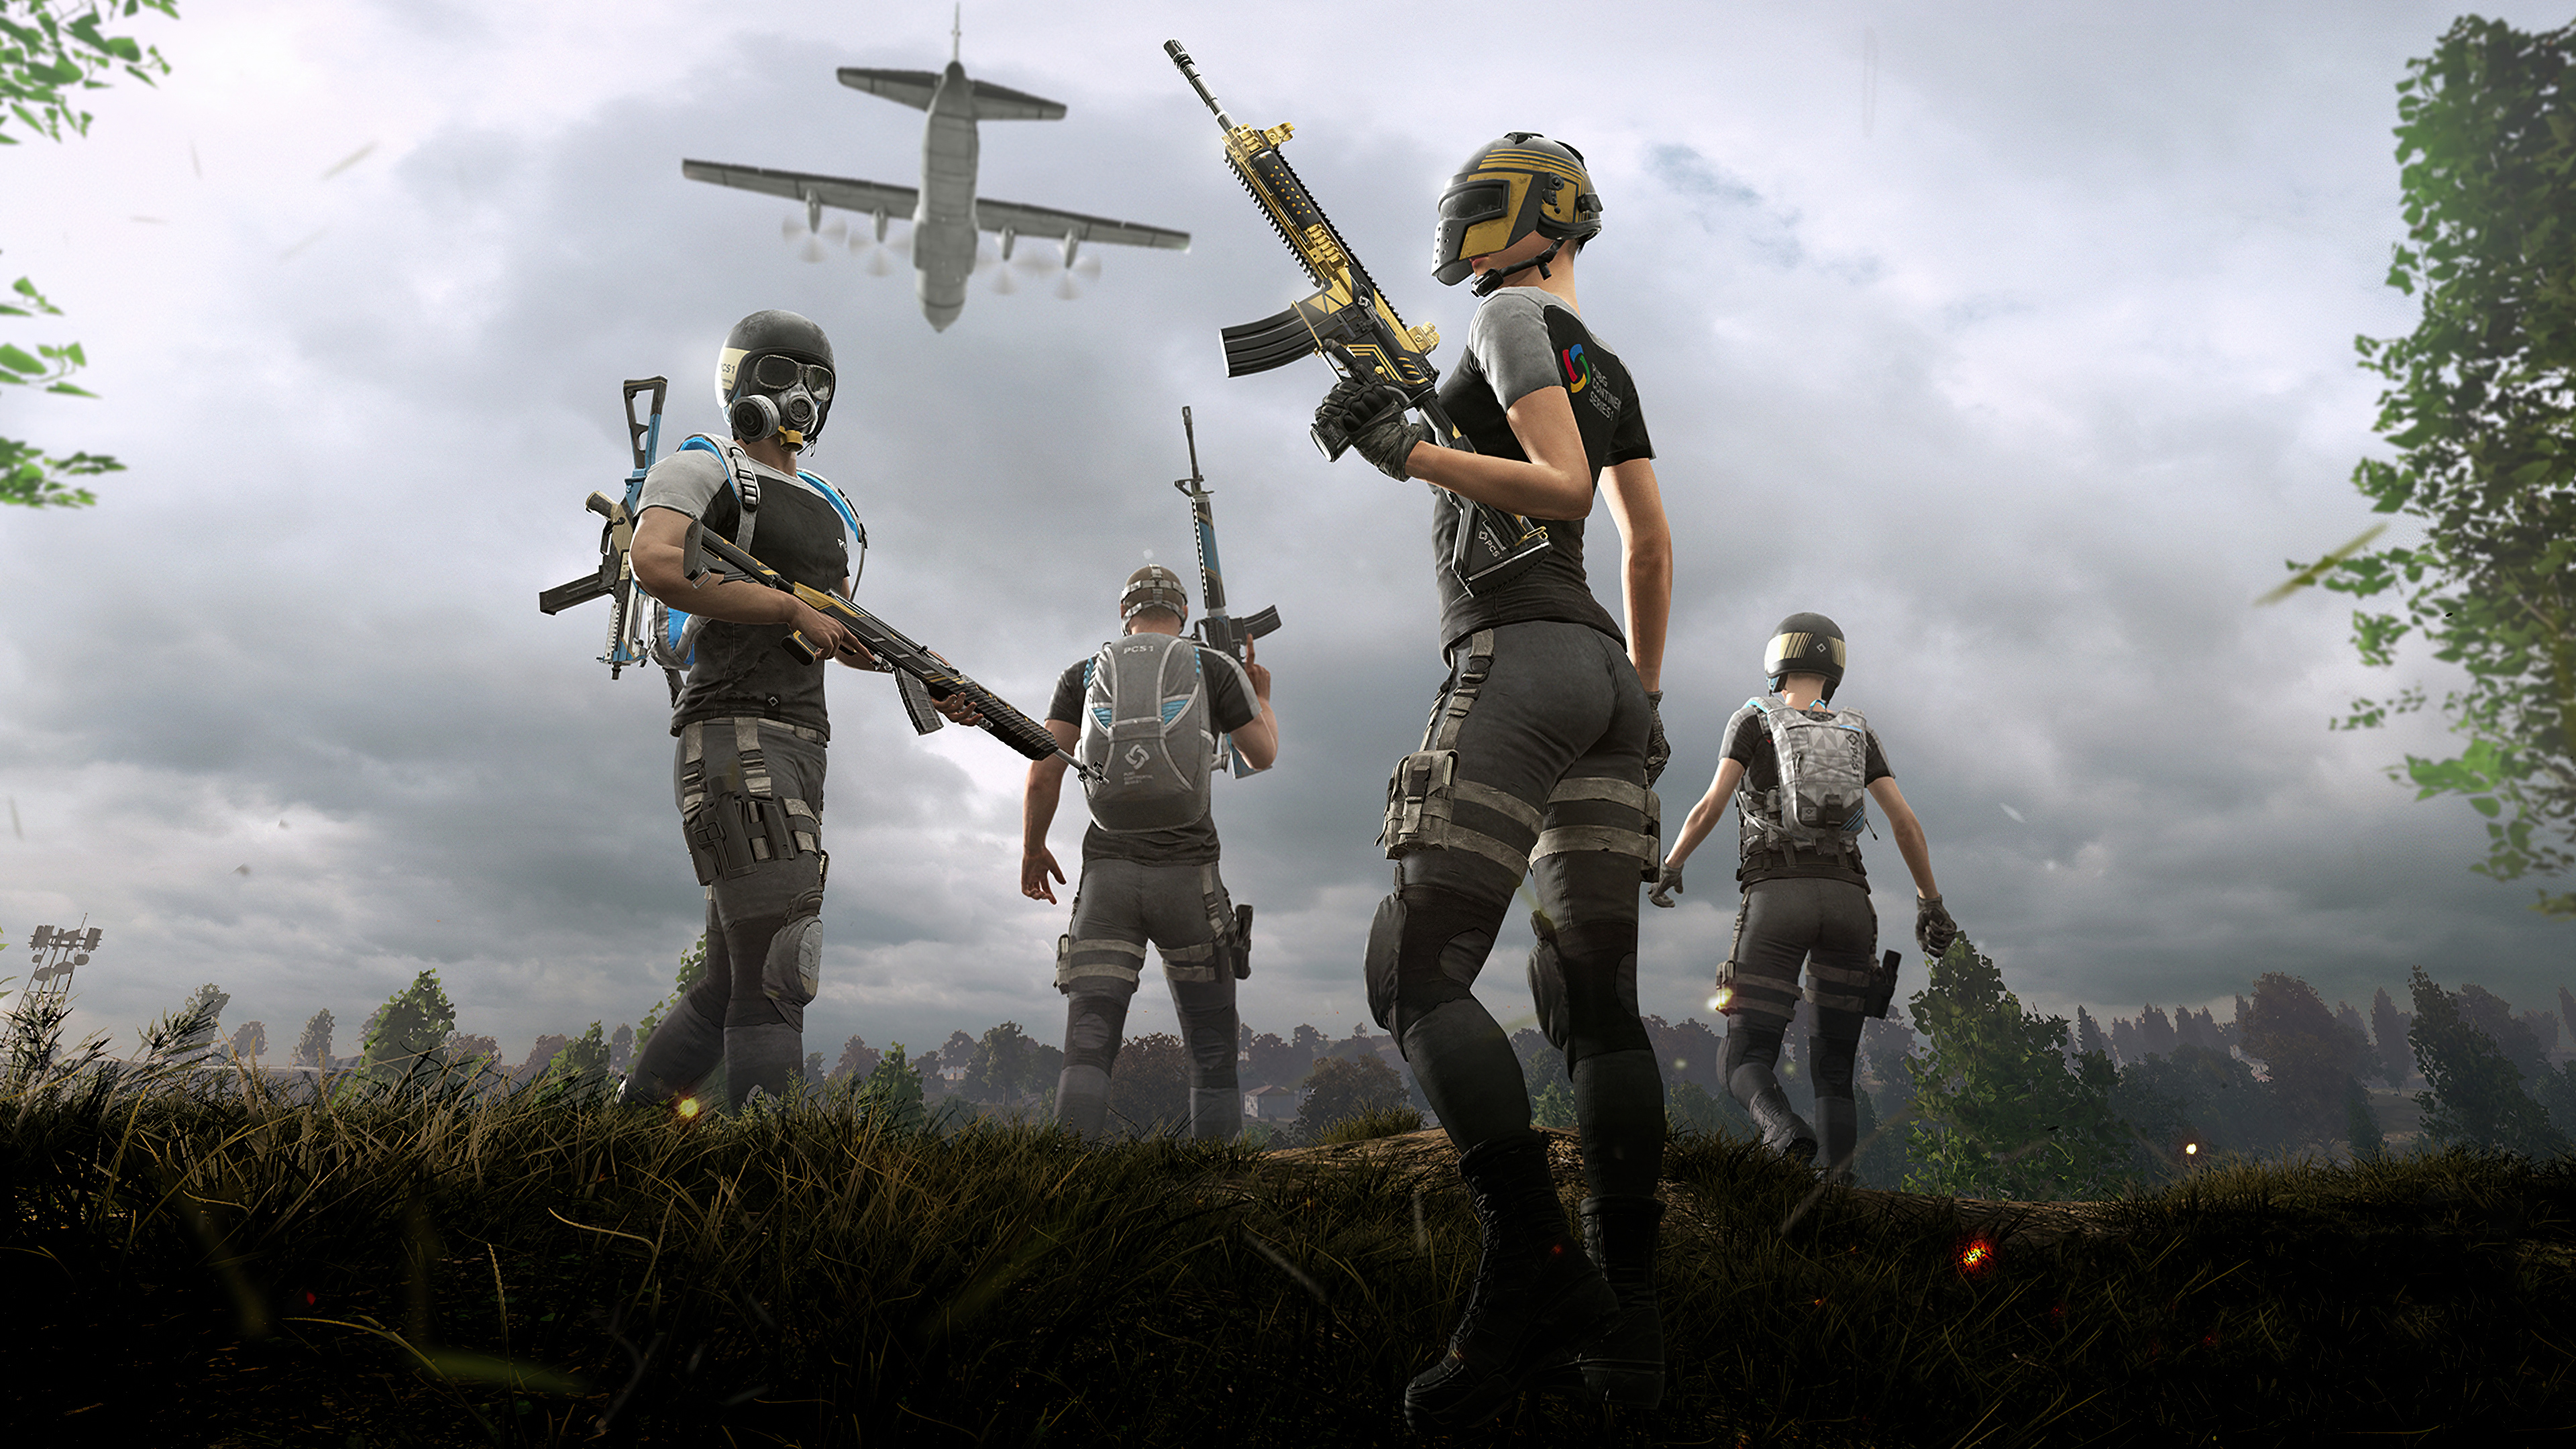 pubg mobile 2020 1596988790 - Pubg Mobile 2020 - Pubg Mobile 2020 game wallpapers 4k